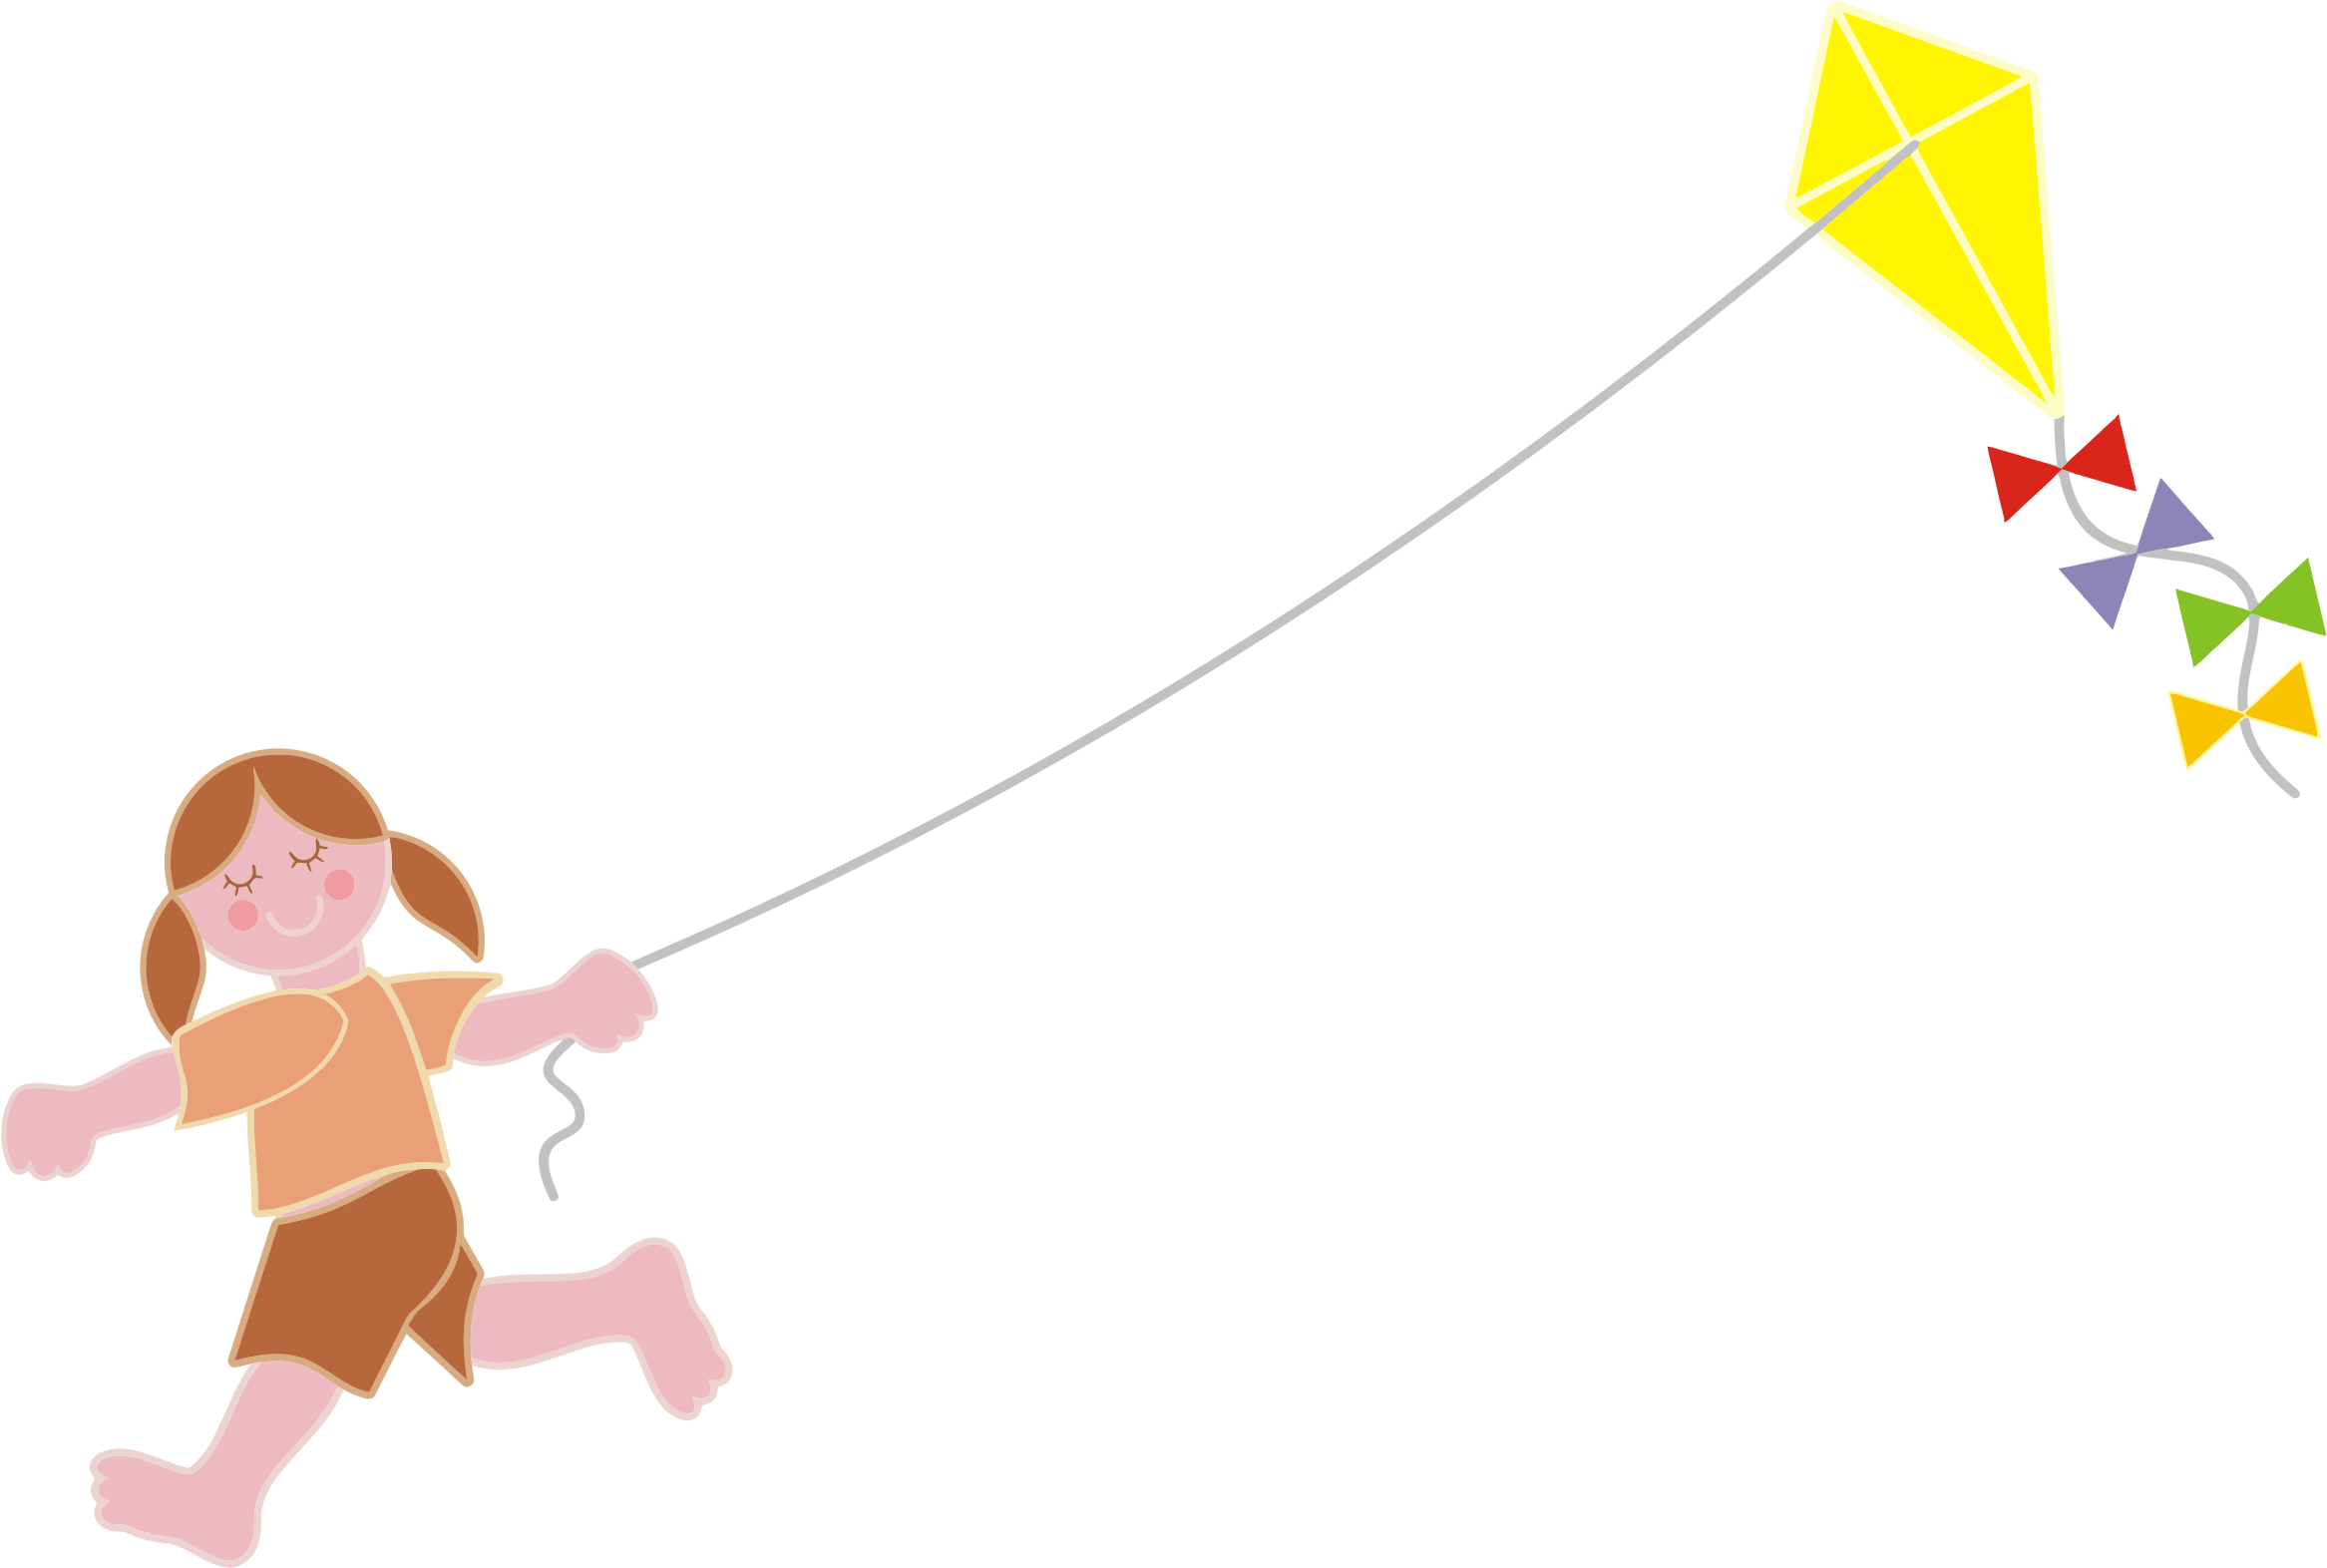 Kite clipart yellow. Go fly a bonkers